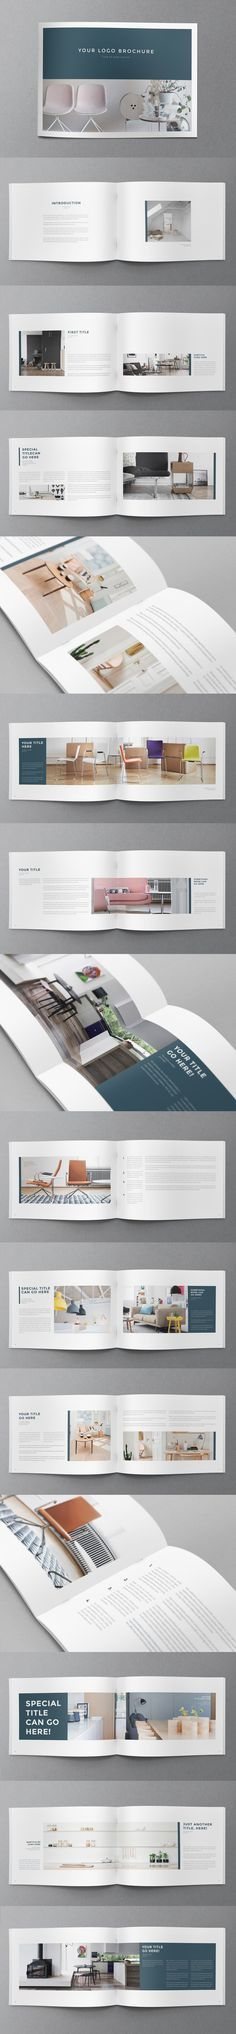 Minimal Modern Black \ White Architecture Brochure Simple - architecture brochure template